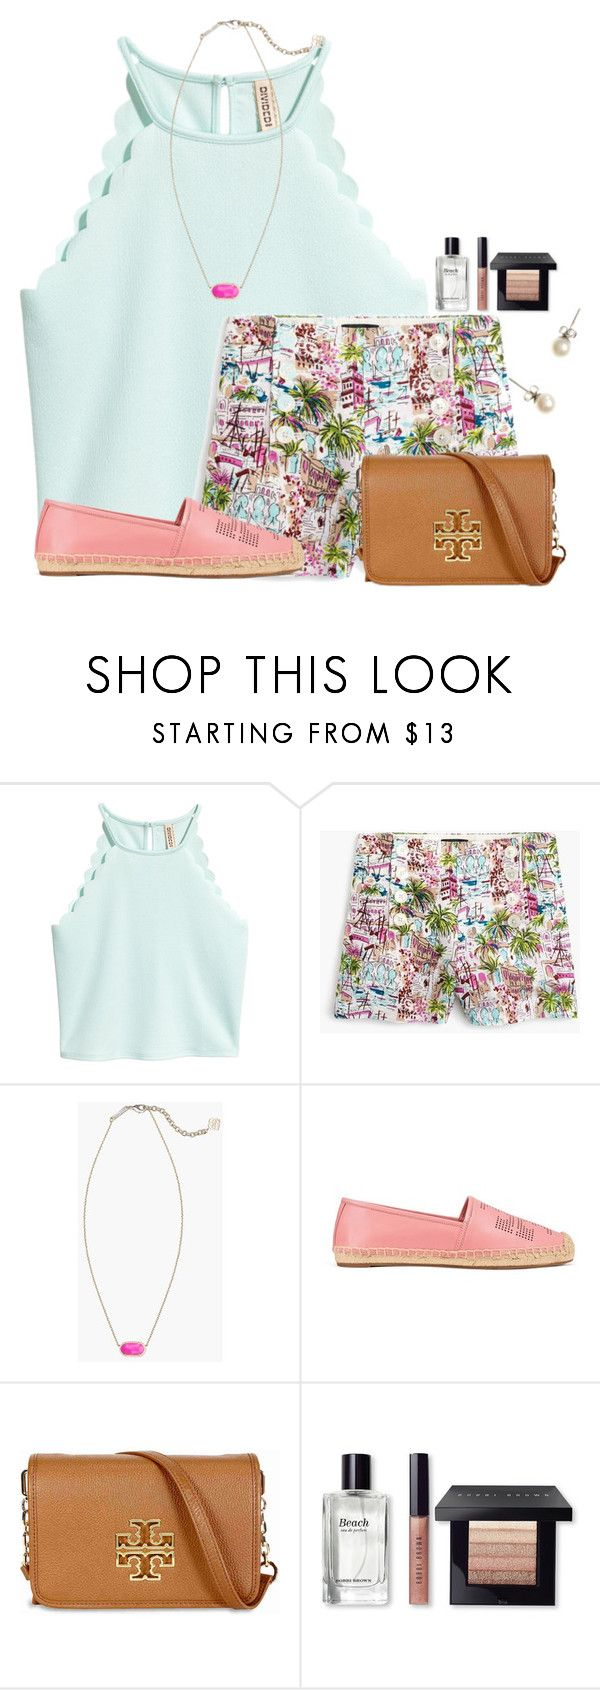 """""""I am in LOVE with these shorts❤"""" by flroasburn ❤ liked on Polyvore featuring J.Crew, Kendra Scott, Tory Burch and Bobbi Brown Cosmetics"""